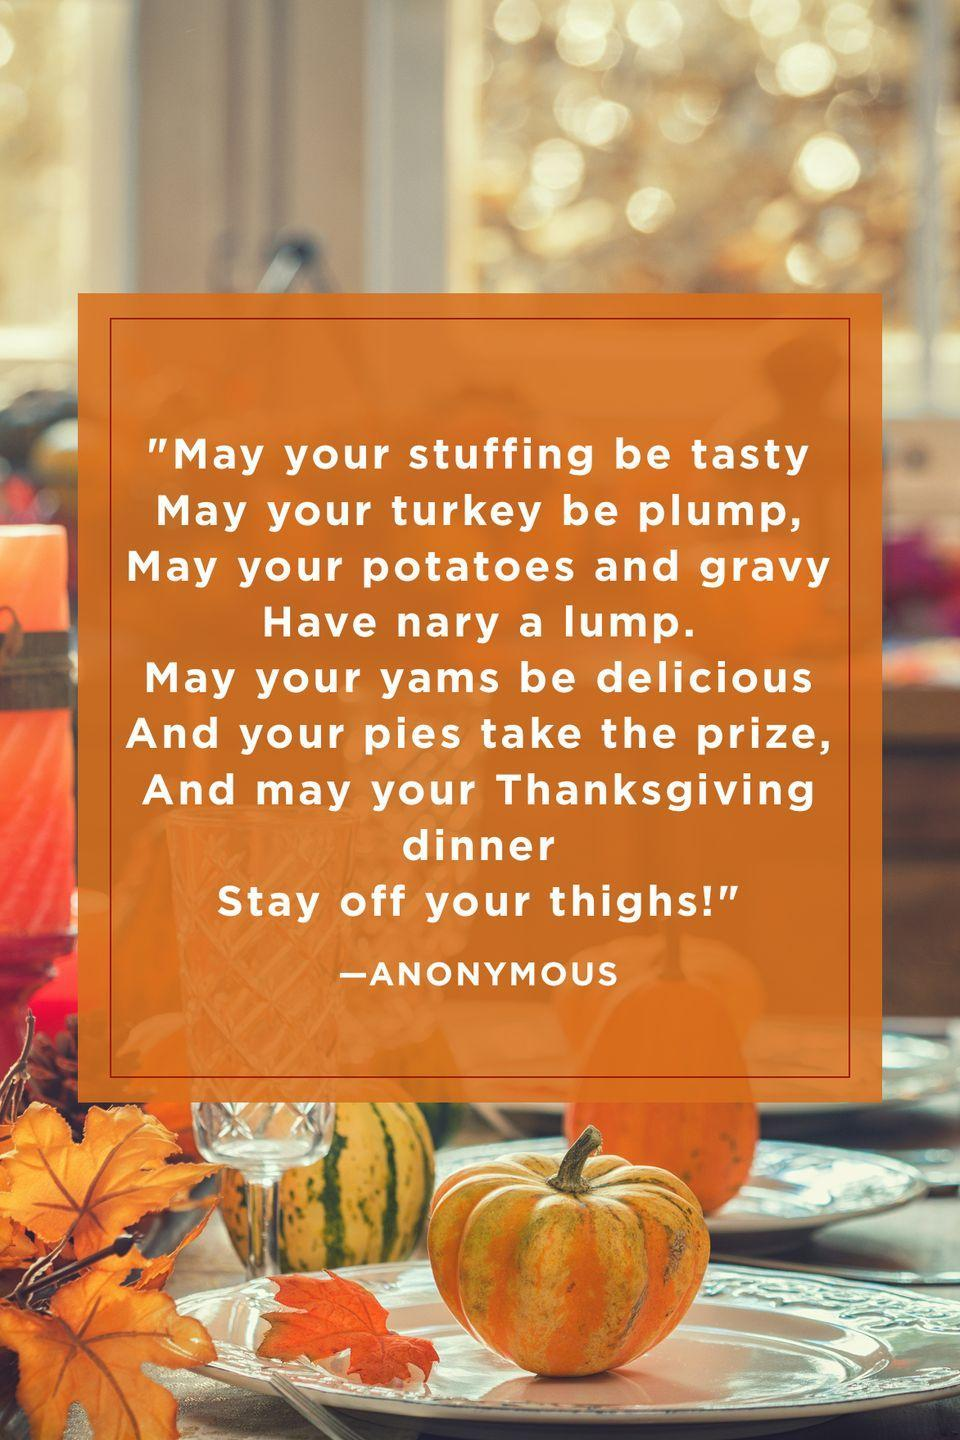 "<p>""May your stuffing be tasty <br>May your turkey be plump, <br>May your potatoes and gravy <br>Have nary a lump. <br>May your yams be delicious <br>And your pies take the prize, <br>And may your Thanksgiving dinner <br>Stay off your thighs!""</p>"